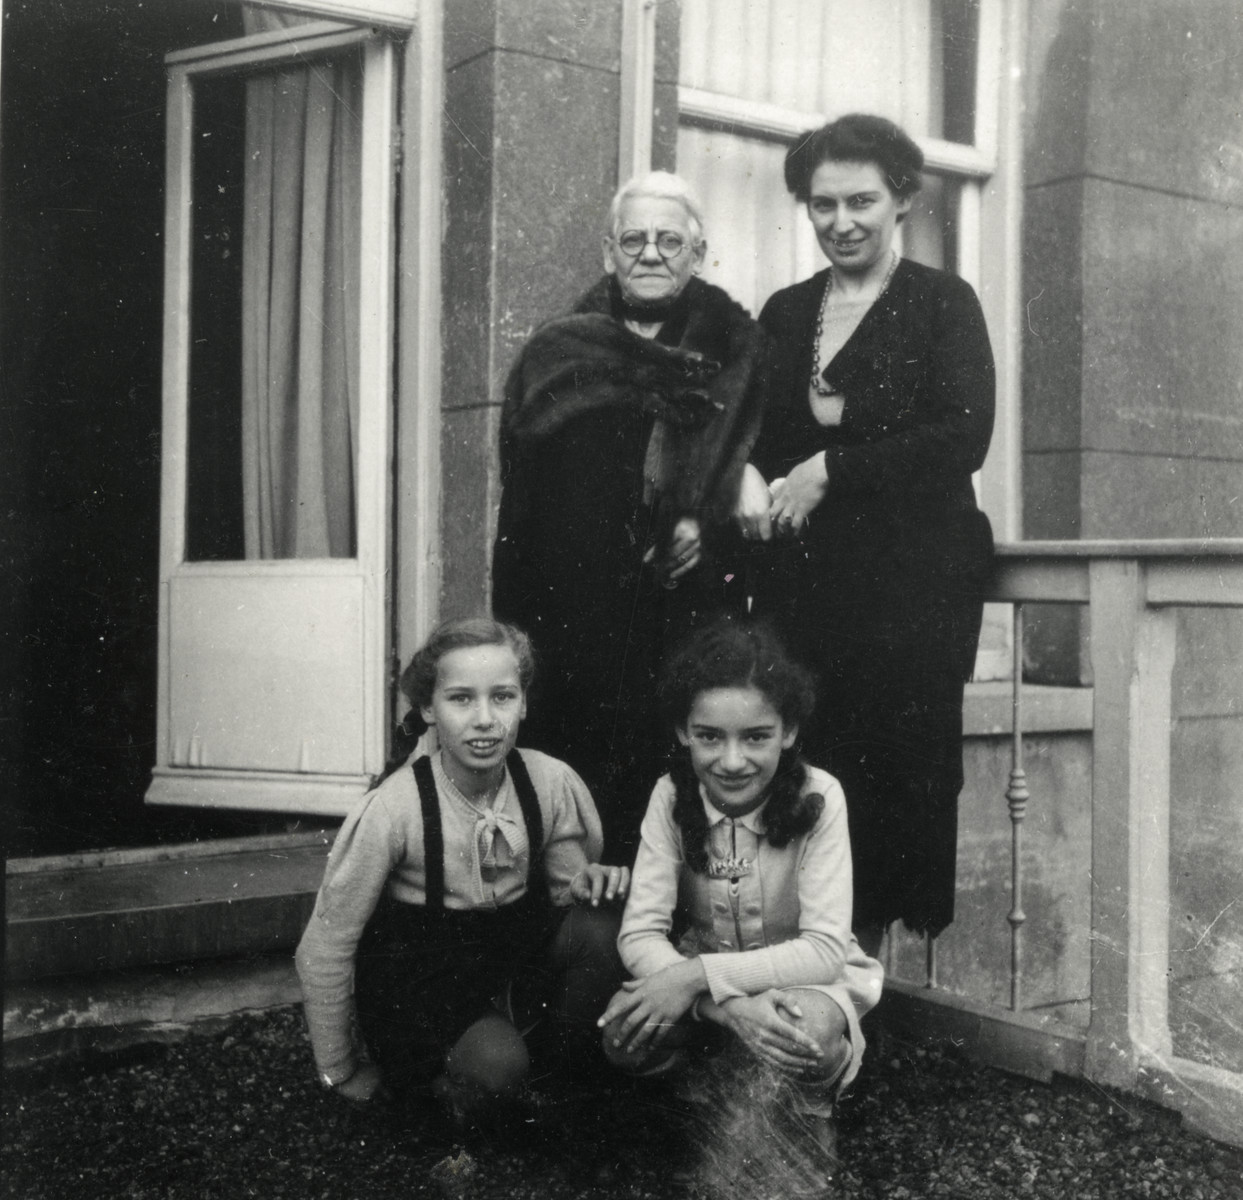 Prewar photograph of the women of the van Collem family standing outside their apartment.  Pictured are Marta and Ilse van Collem, their mother Lotte and grandmother.